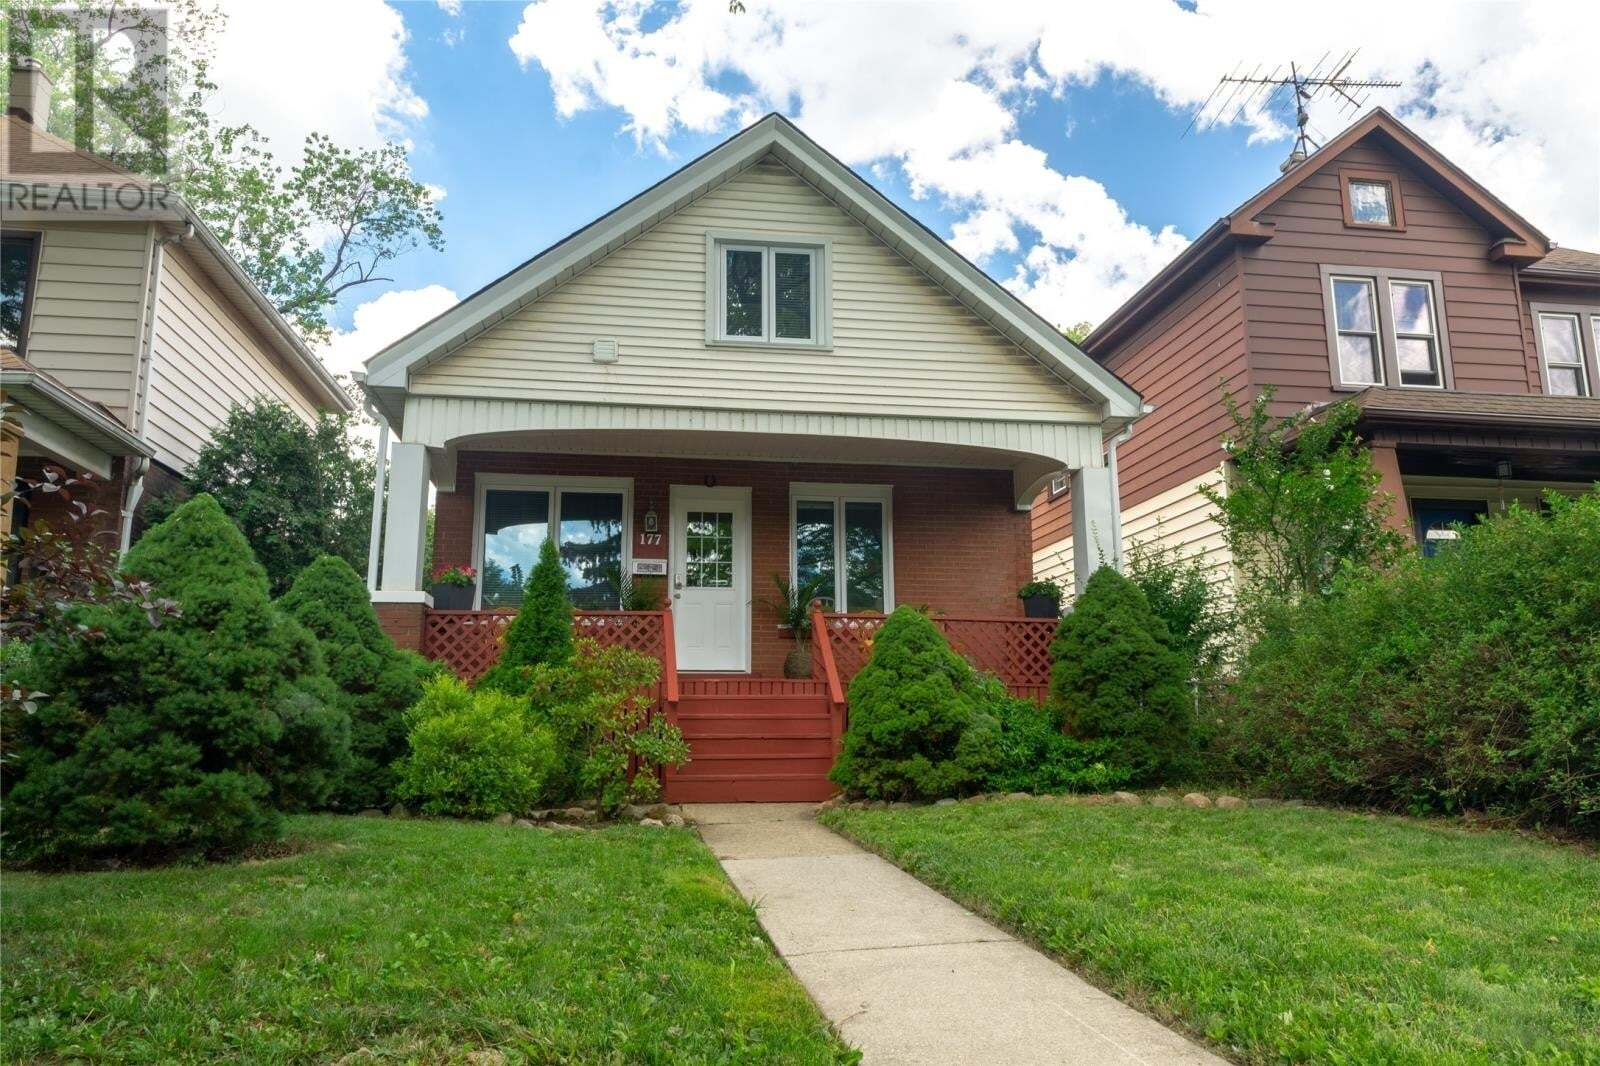 House for sale at 177 Cameron Ave  Windsor Ontario - MLS: 20009177